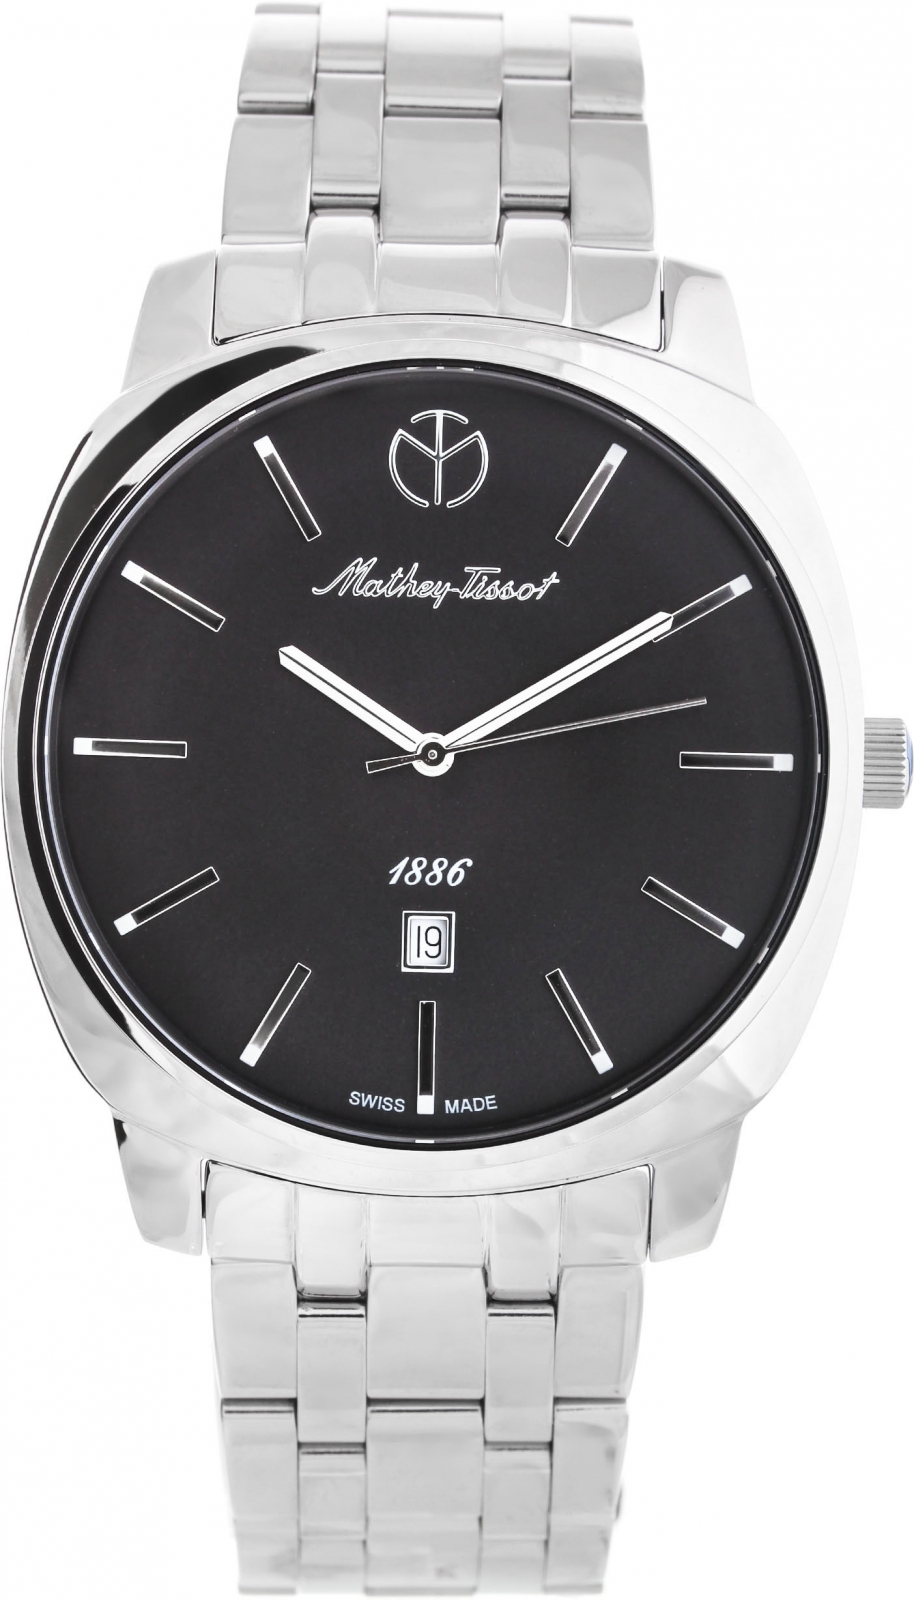 Mathey-Tissot Smart H6940MAN от Mathey-Tissot